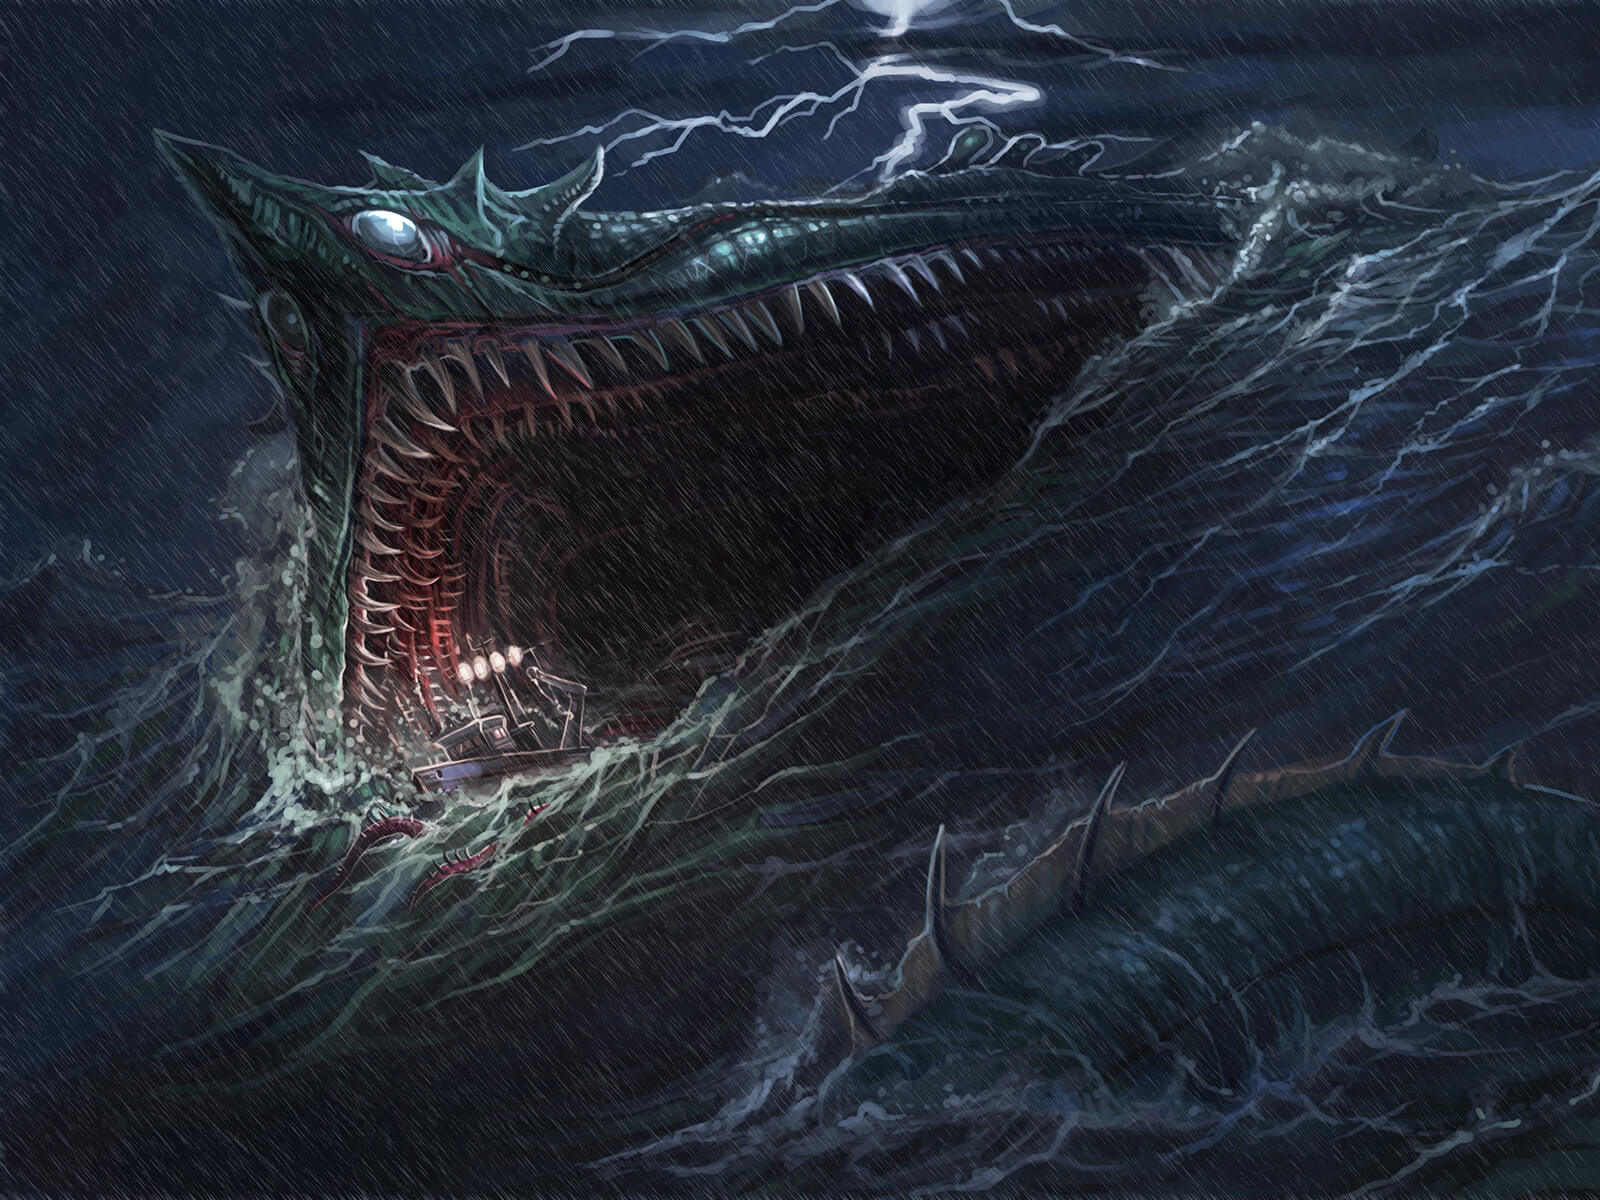 The teeth-filled maw of a massive sea serpent opens over tumultuous seas as a fishing boat is sucked down its dark recesses.